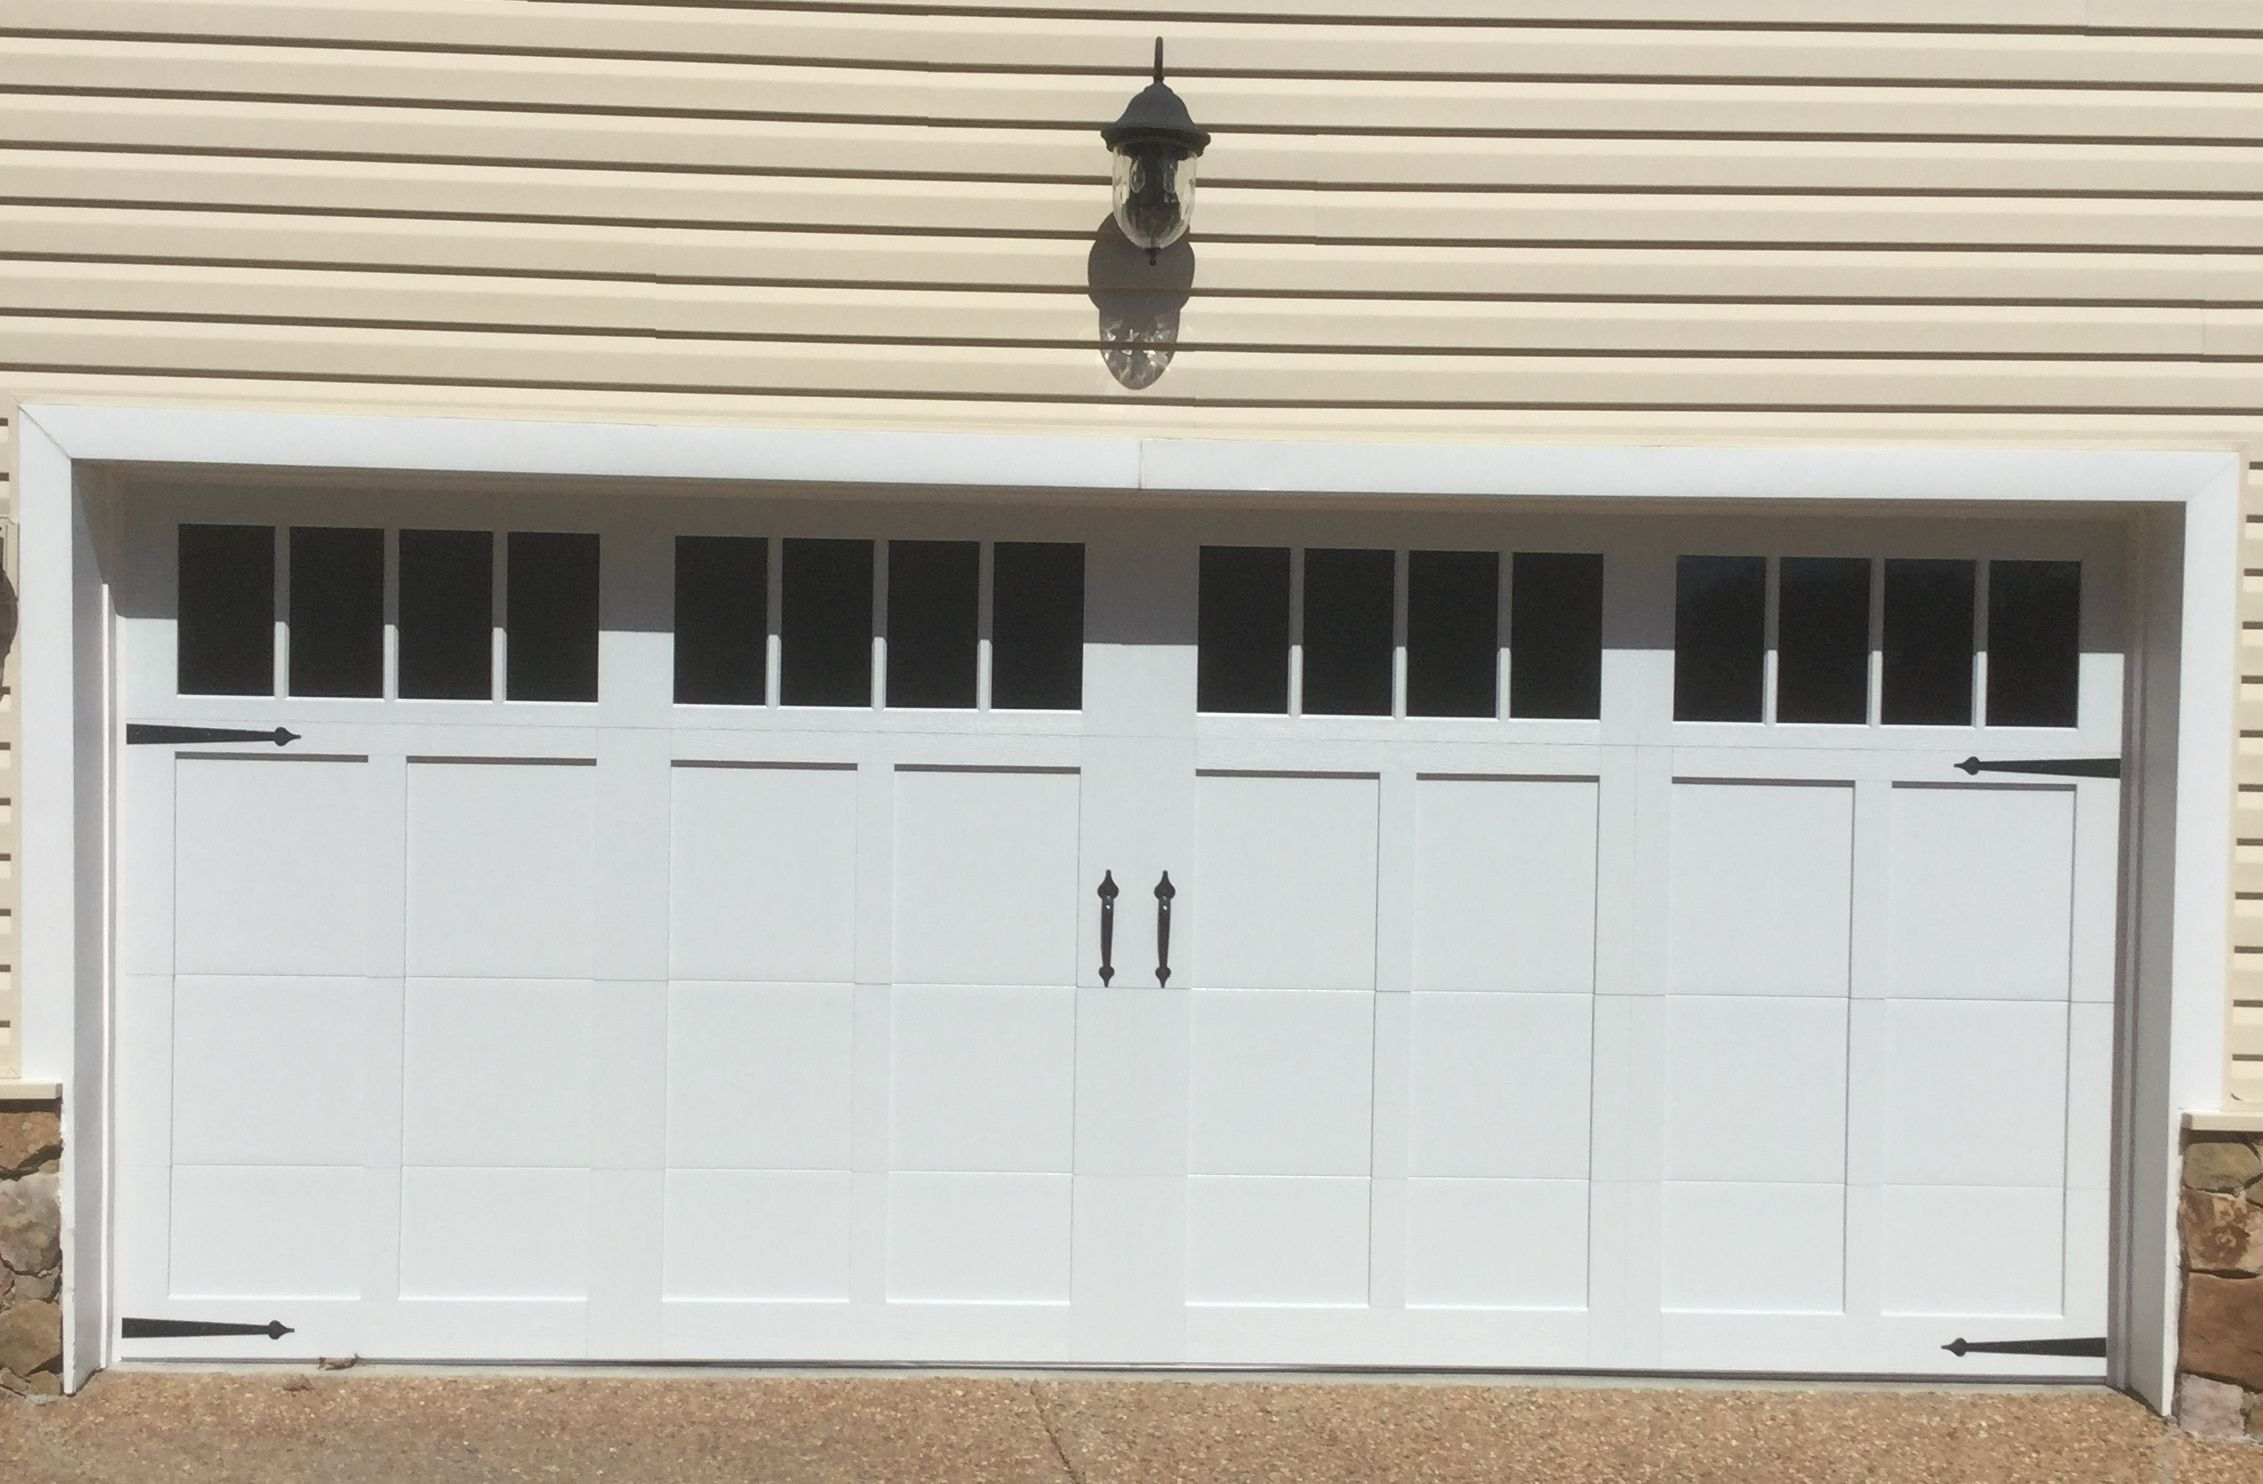 16x7 Model 5330 carriage style garage door with top glass